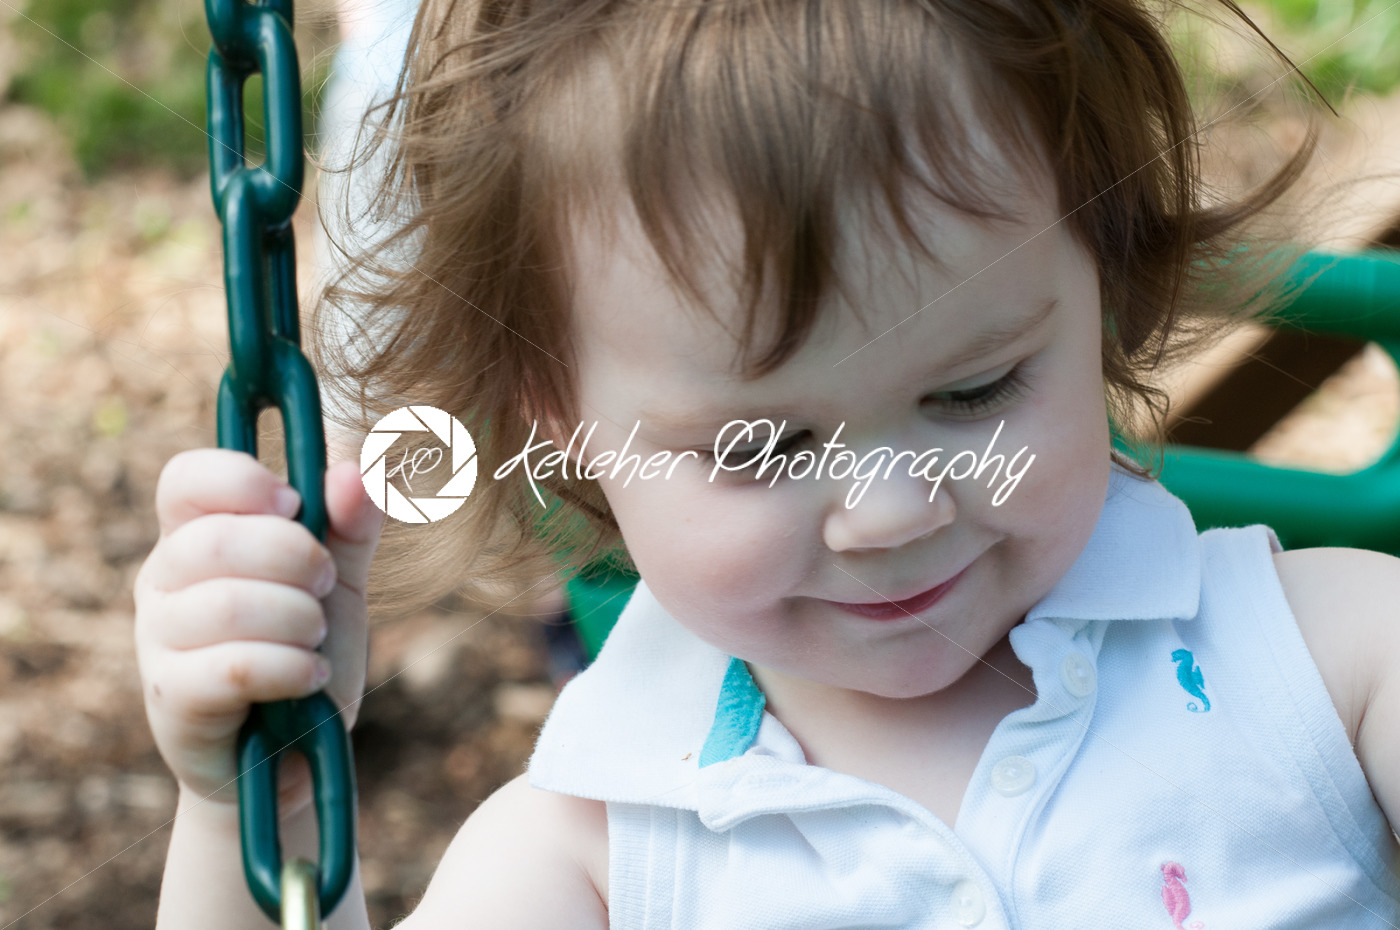 Young girl having fun on a swing - Kelleher Photography Store